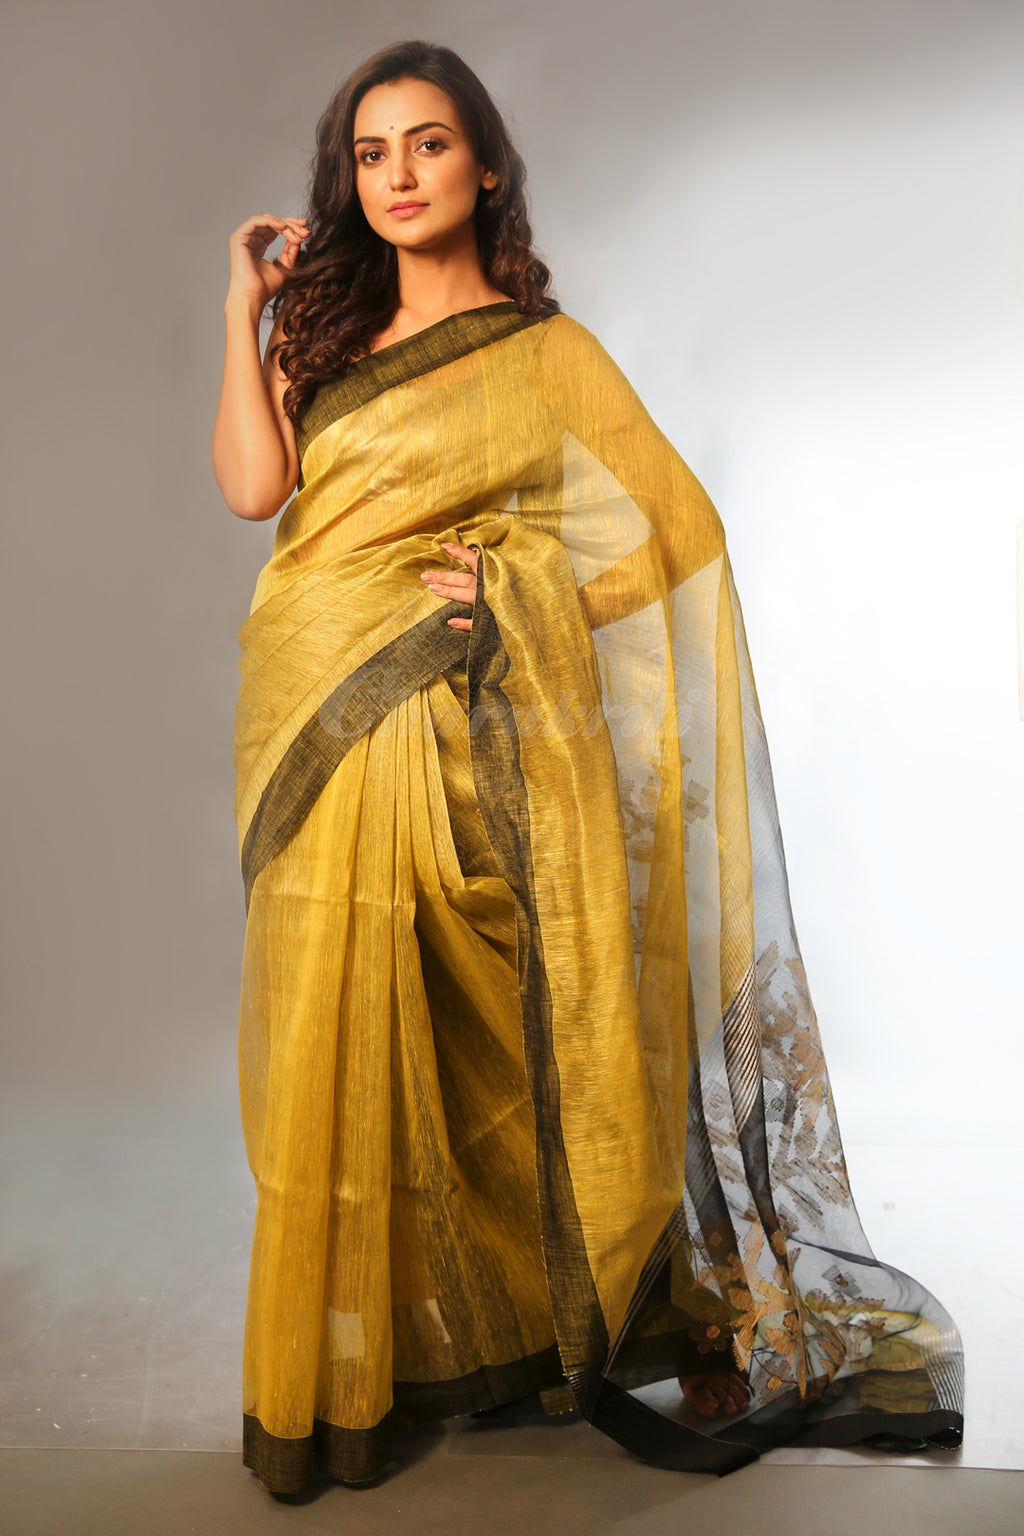 This Mustard Saree Is Handwoven With Linen And Silk Yarns And Features Black Border And Woven Floral Design Details On The Pallu Accented With Thread Tassel Details.